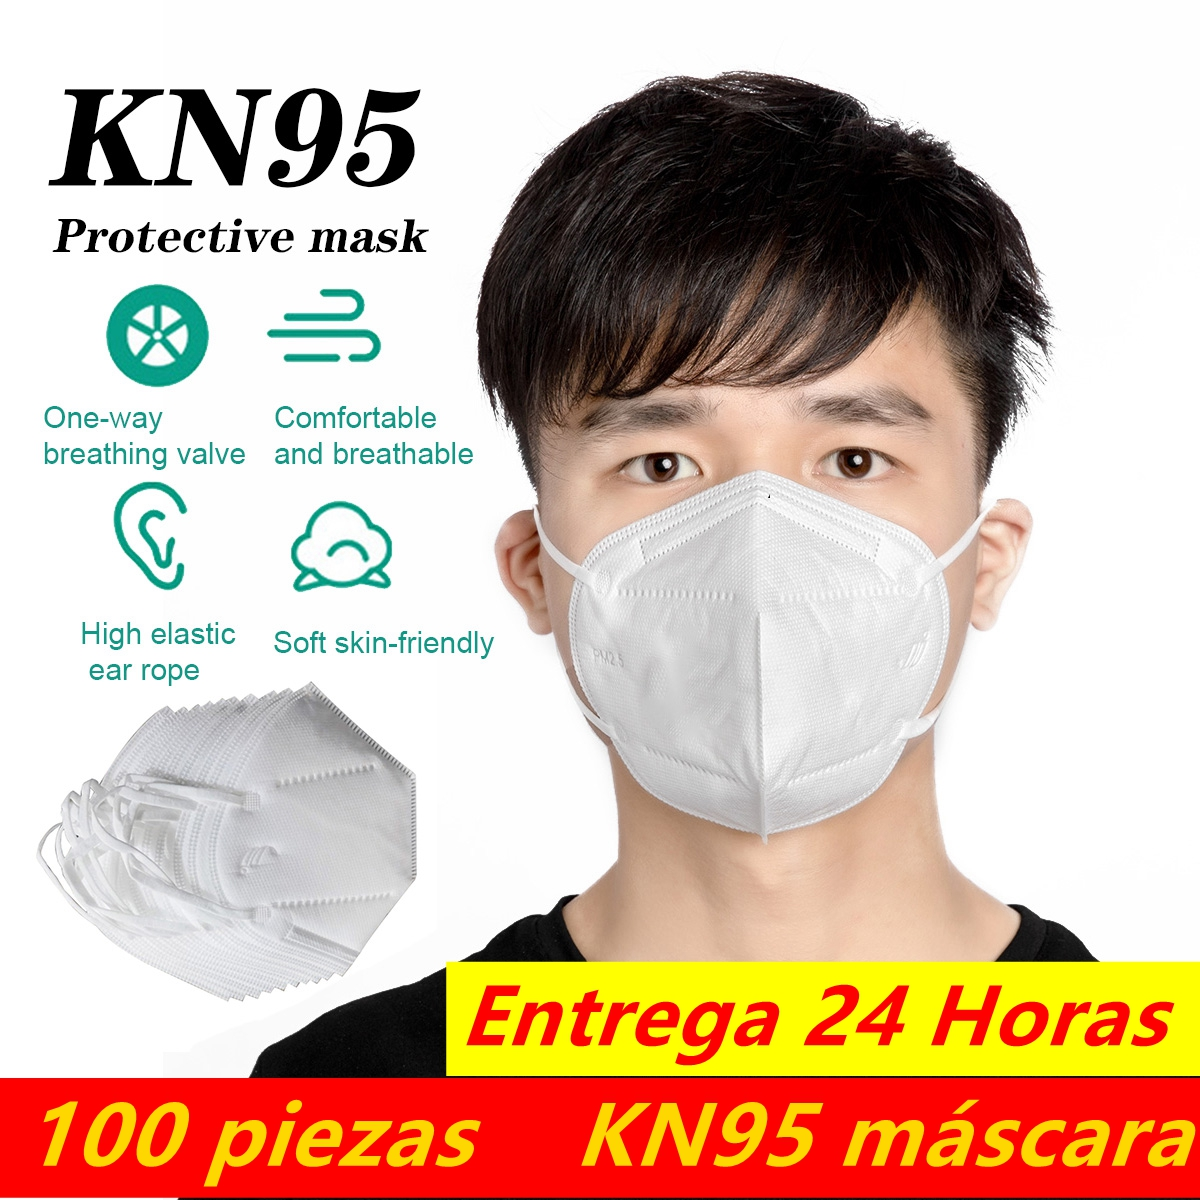 Mascaras Entrega 24 Horas KN95 Dustproof Anti-fog And Breathable Face Masks 95% Filtration KN95 Masks